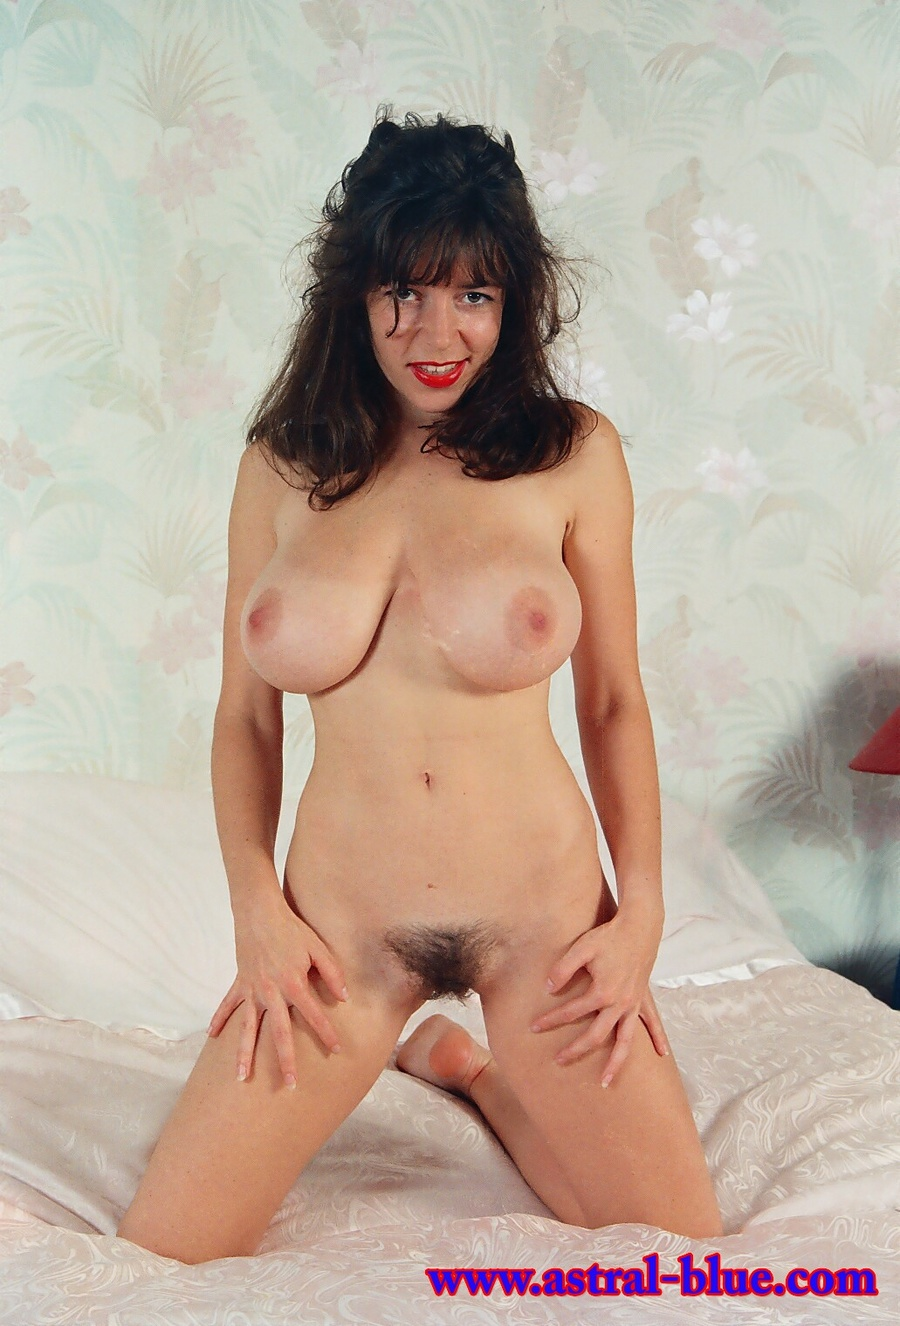 Diana Wynn, Big Tits Uk Page 3 Girl, Nude M - Xxx Dessert - Picture 1-5233